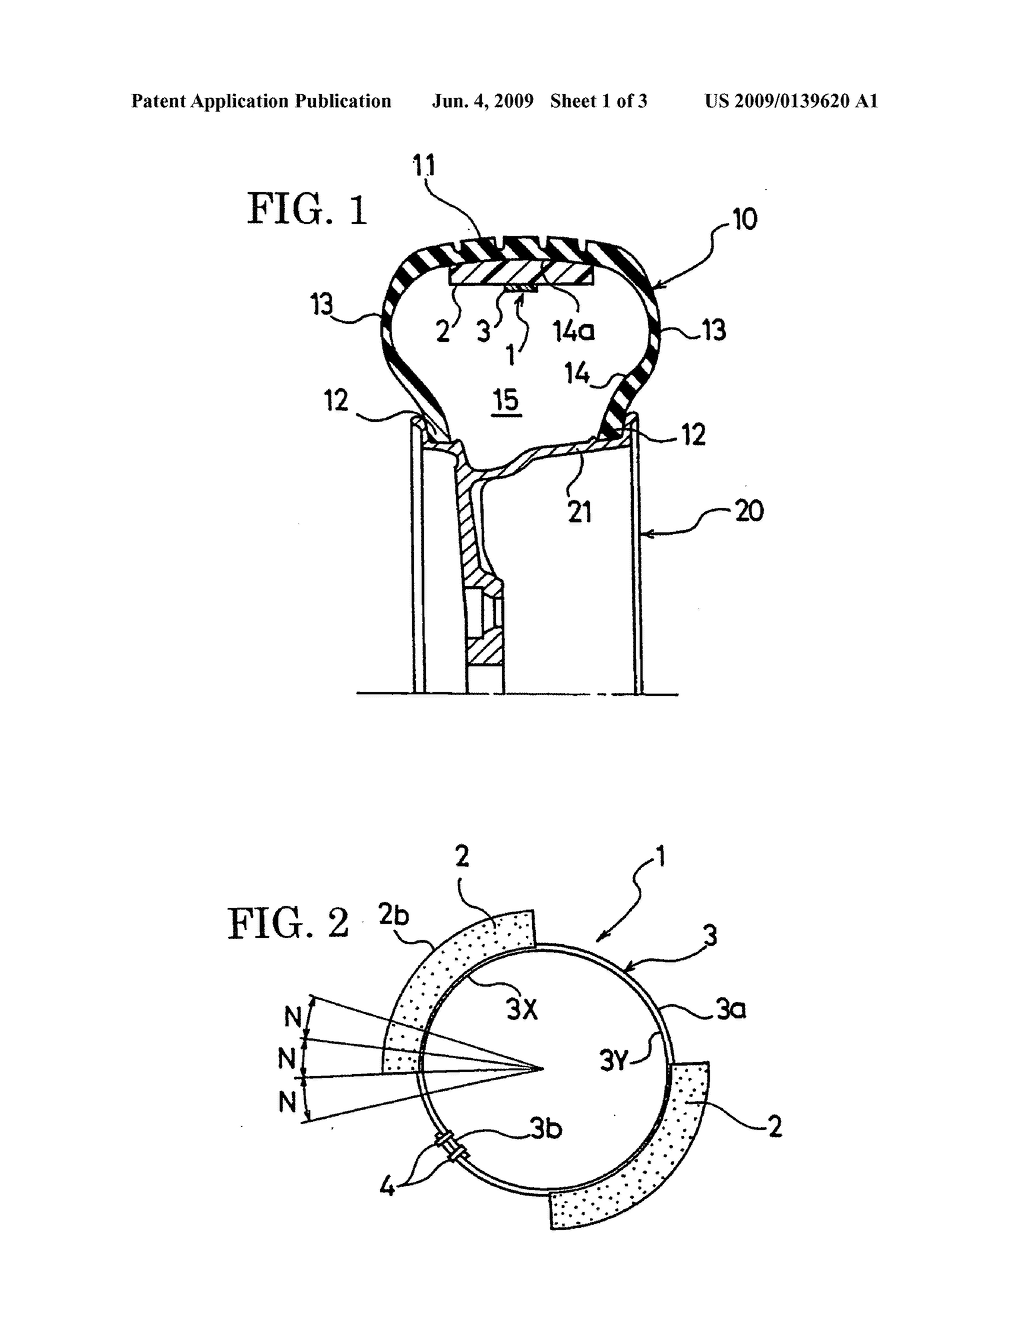 hight resolution of tire cavity resonance restricting device and pneumatic tire diagram schematic and image 02